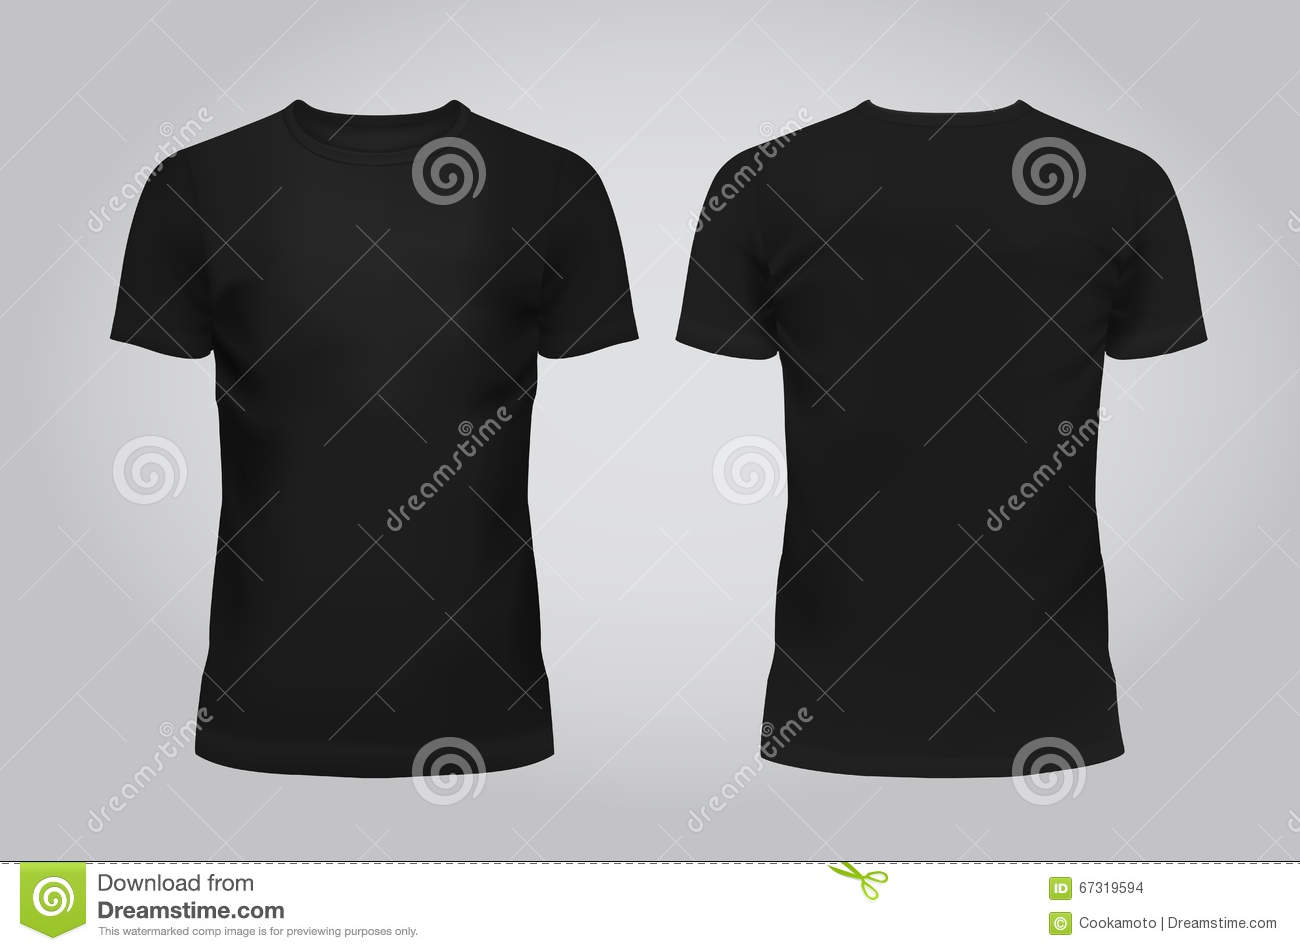 Black t shirt design template - T Shirt Design Template Front Back Black And Stock Photo